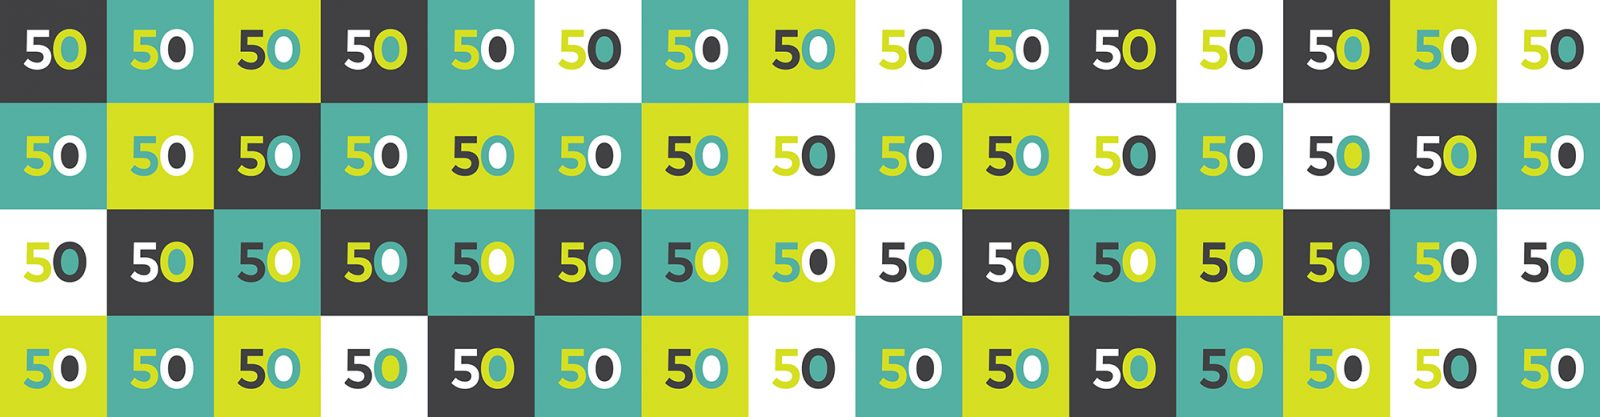 Numeral 50 repeated on different colored squares